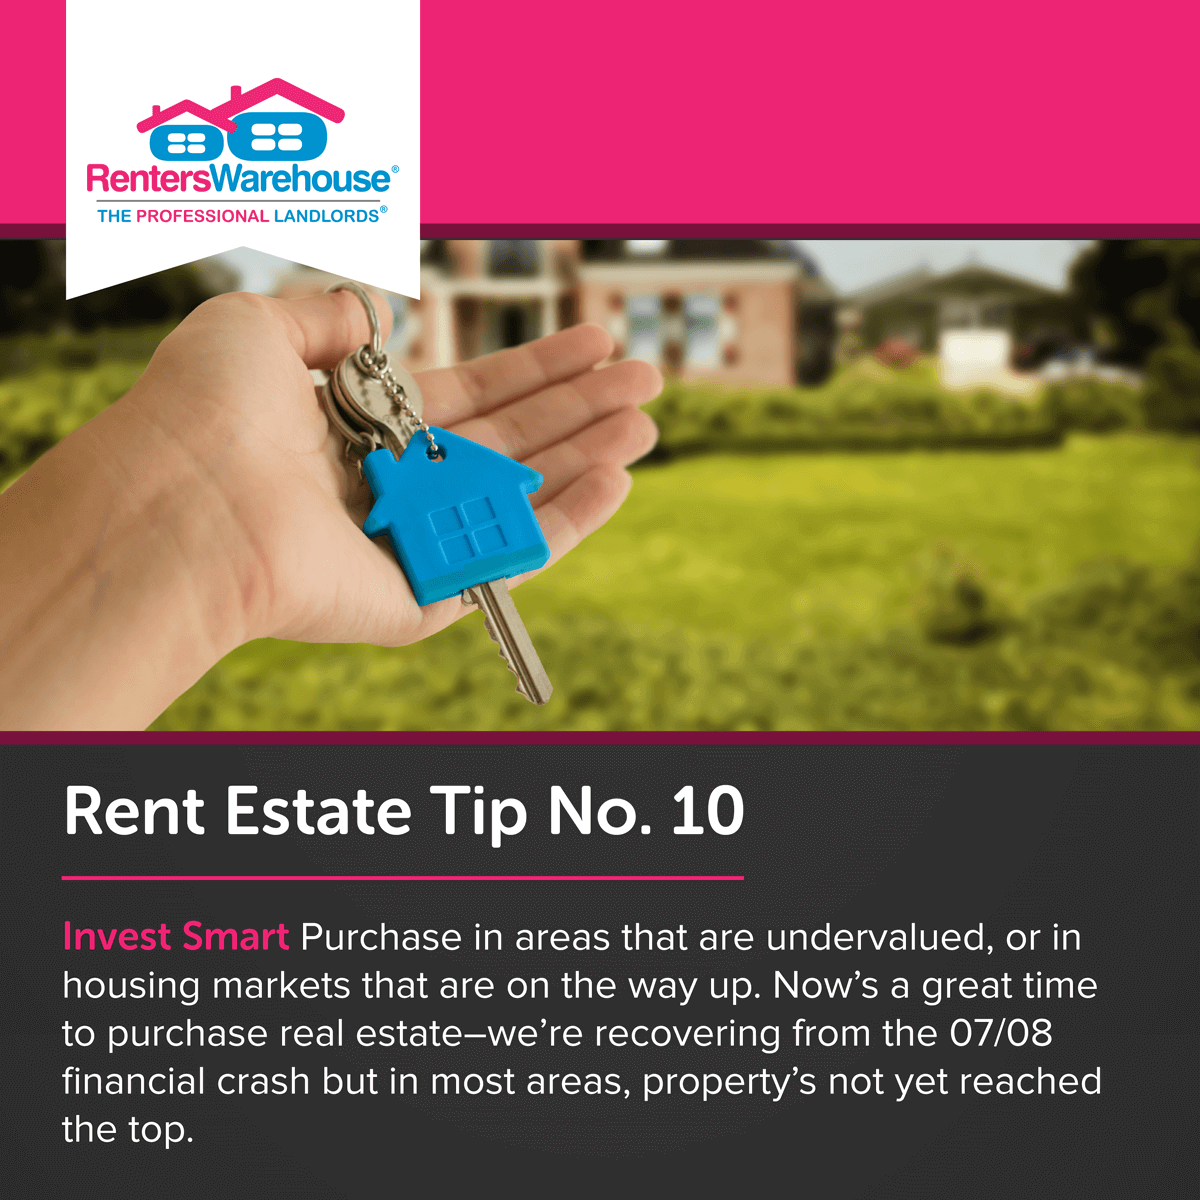 Image related to Rent Estate™ Tip No. 10 - Invest Smart